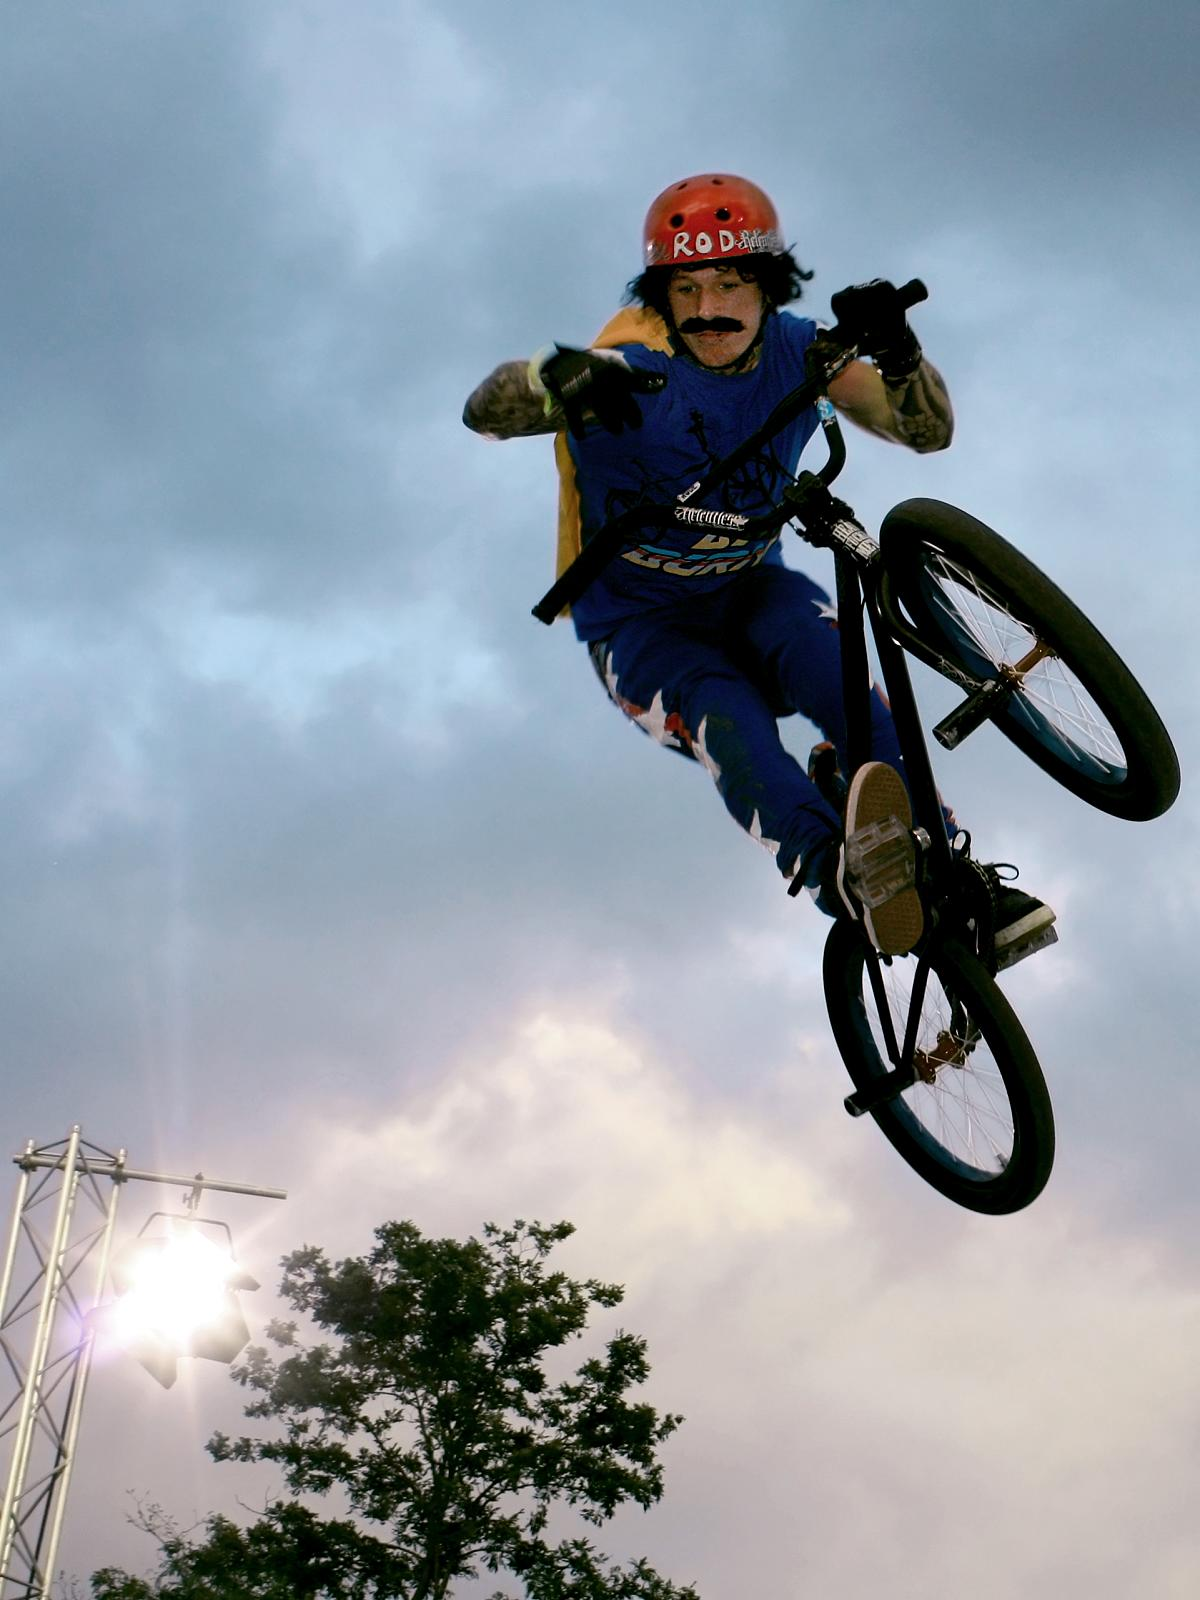 The Sports Archives Blog - The Sports Archives - How To Become A BMXer!